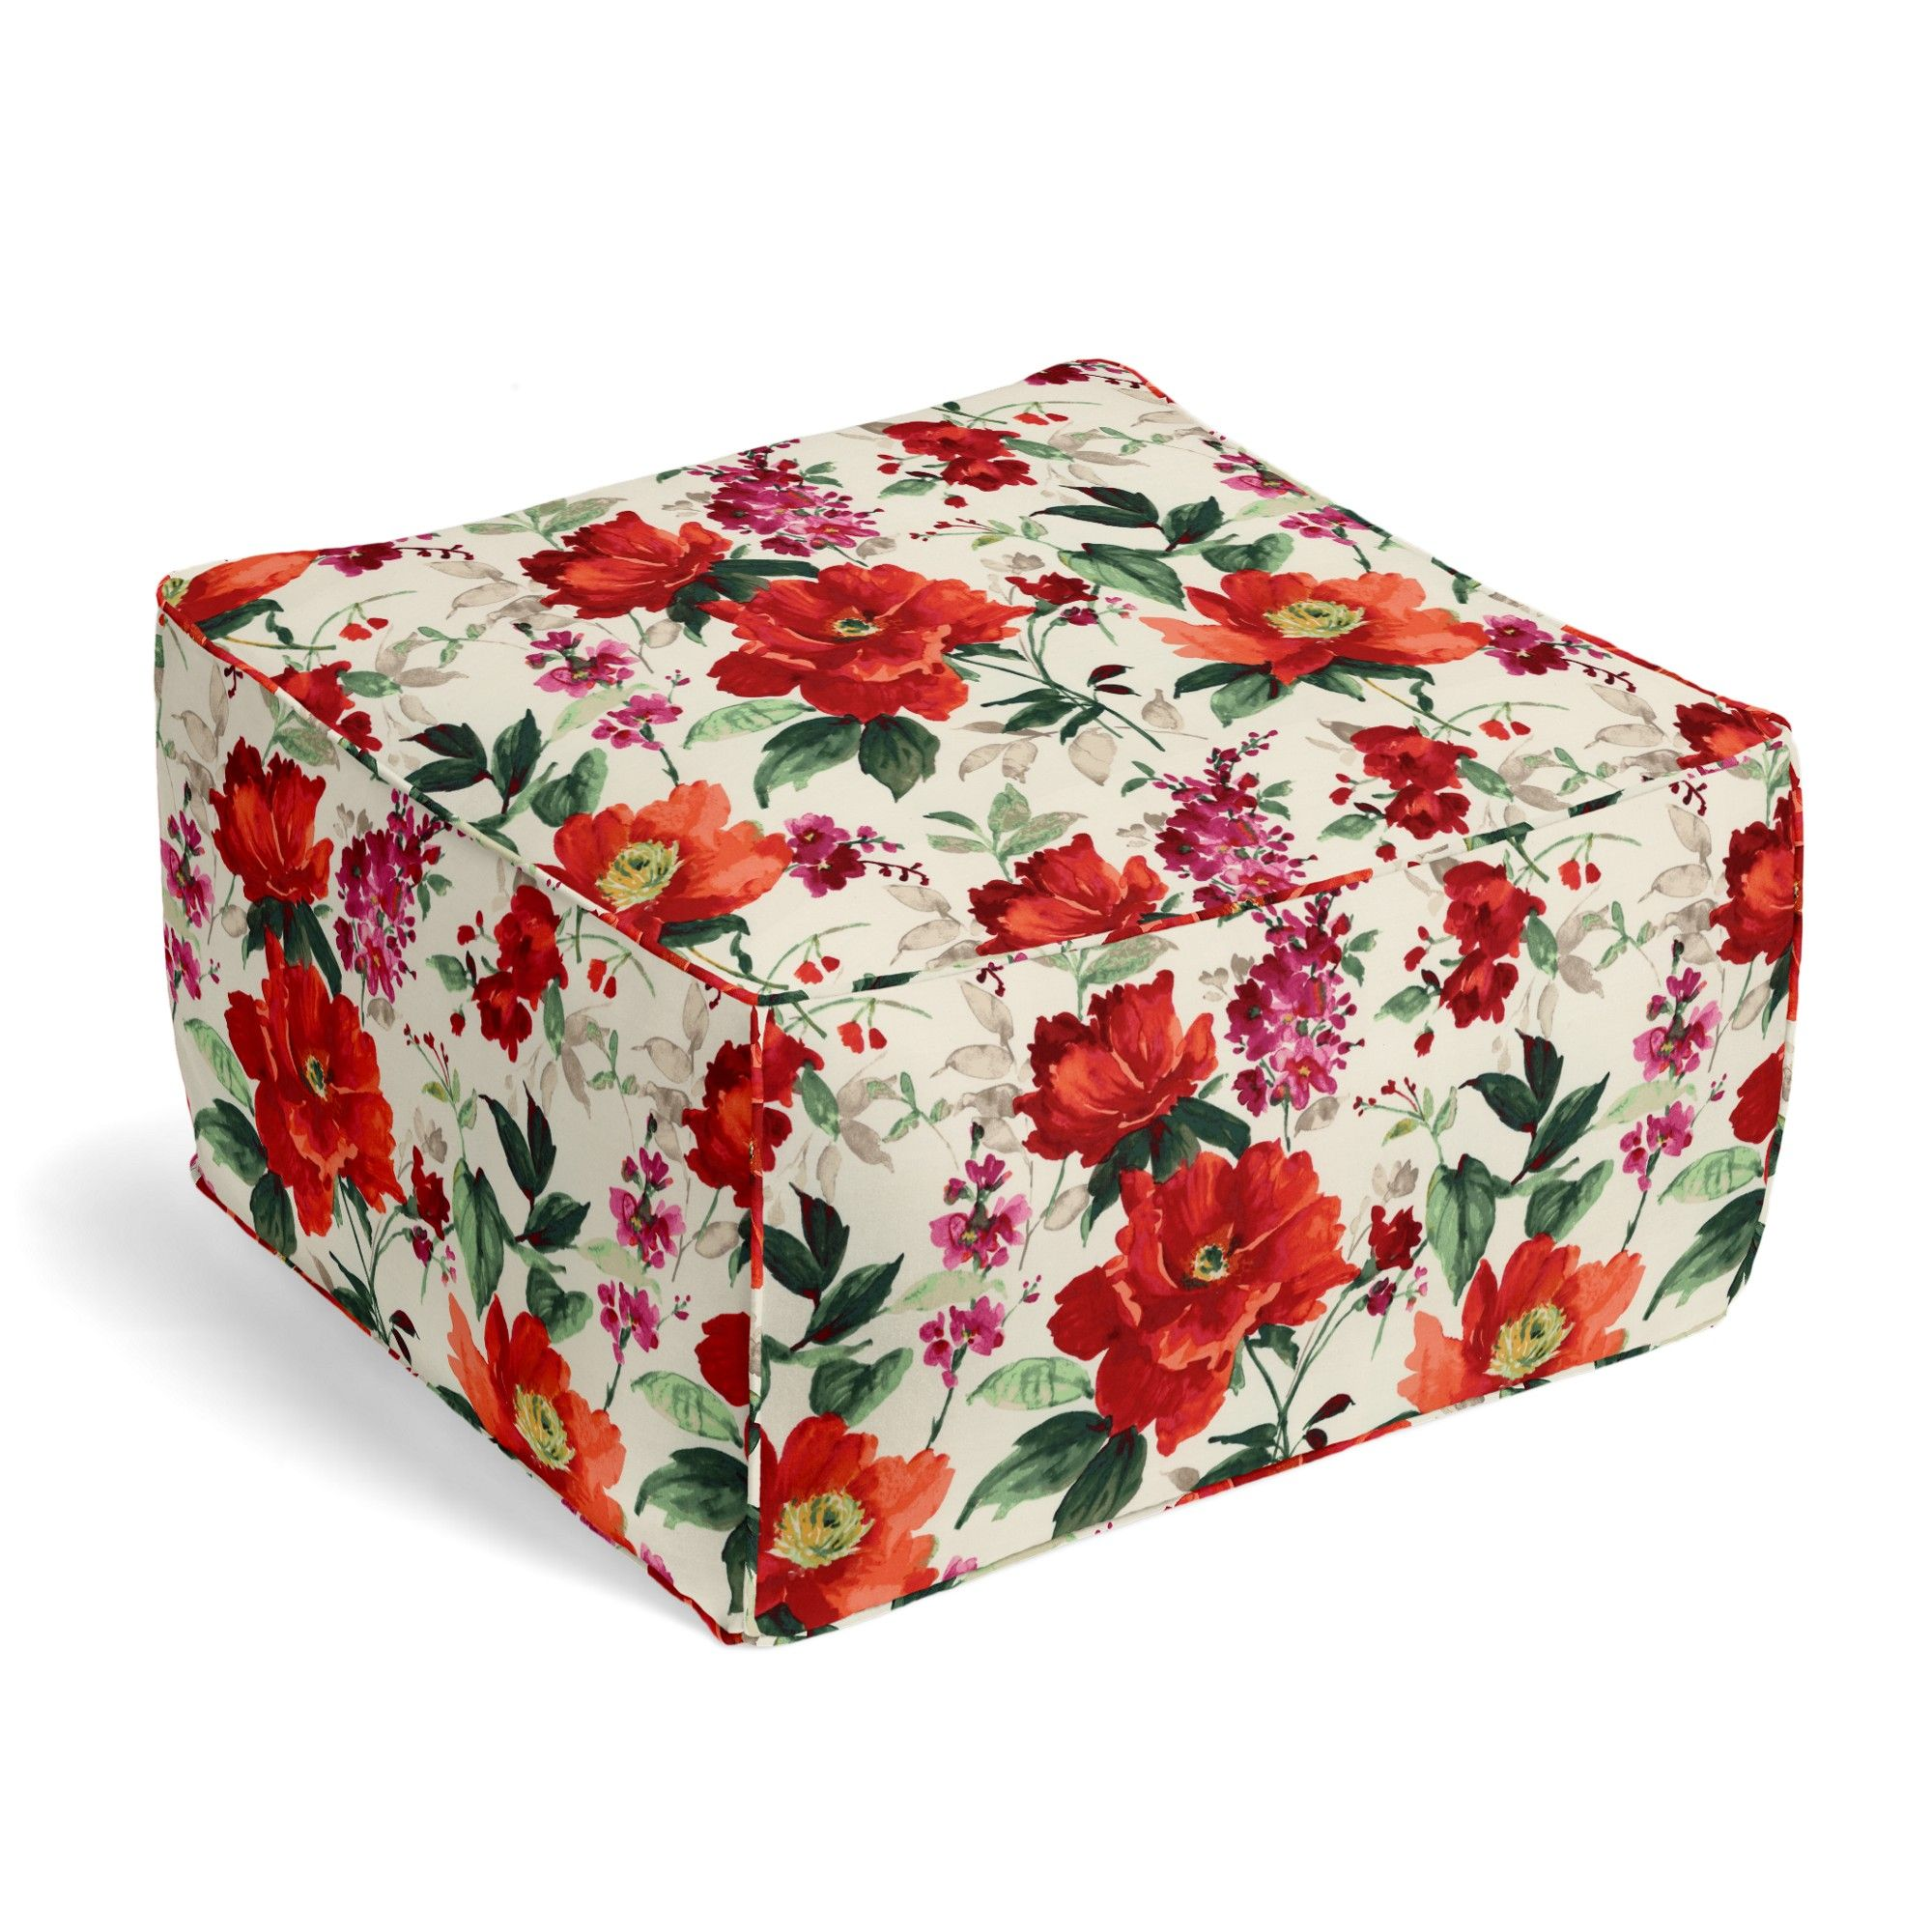 Bright Red Painterly Floral Custom Pouf | Loom Decor $220